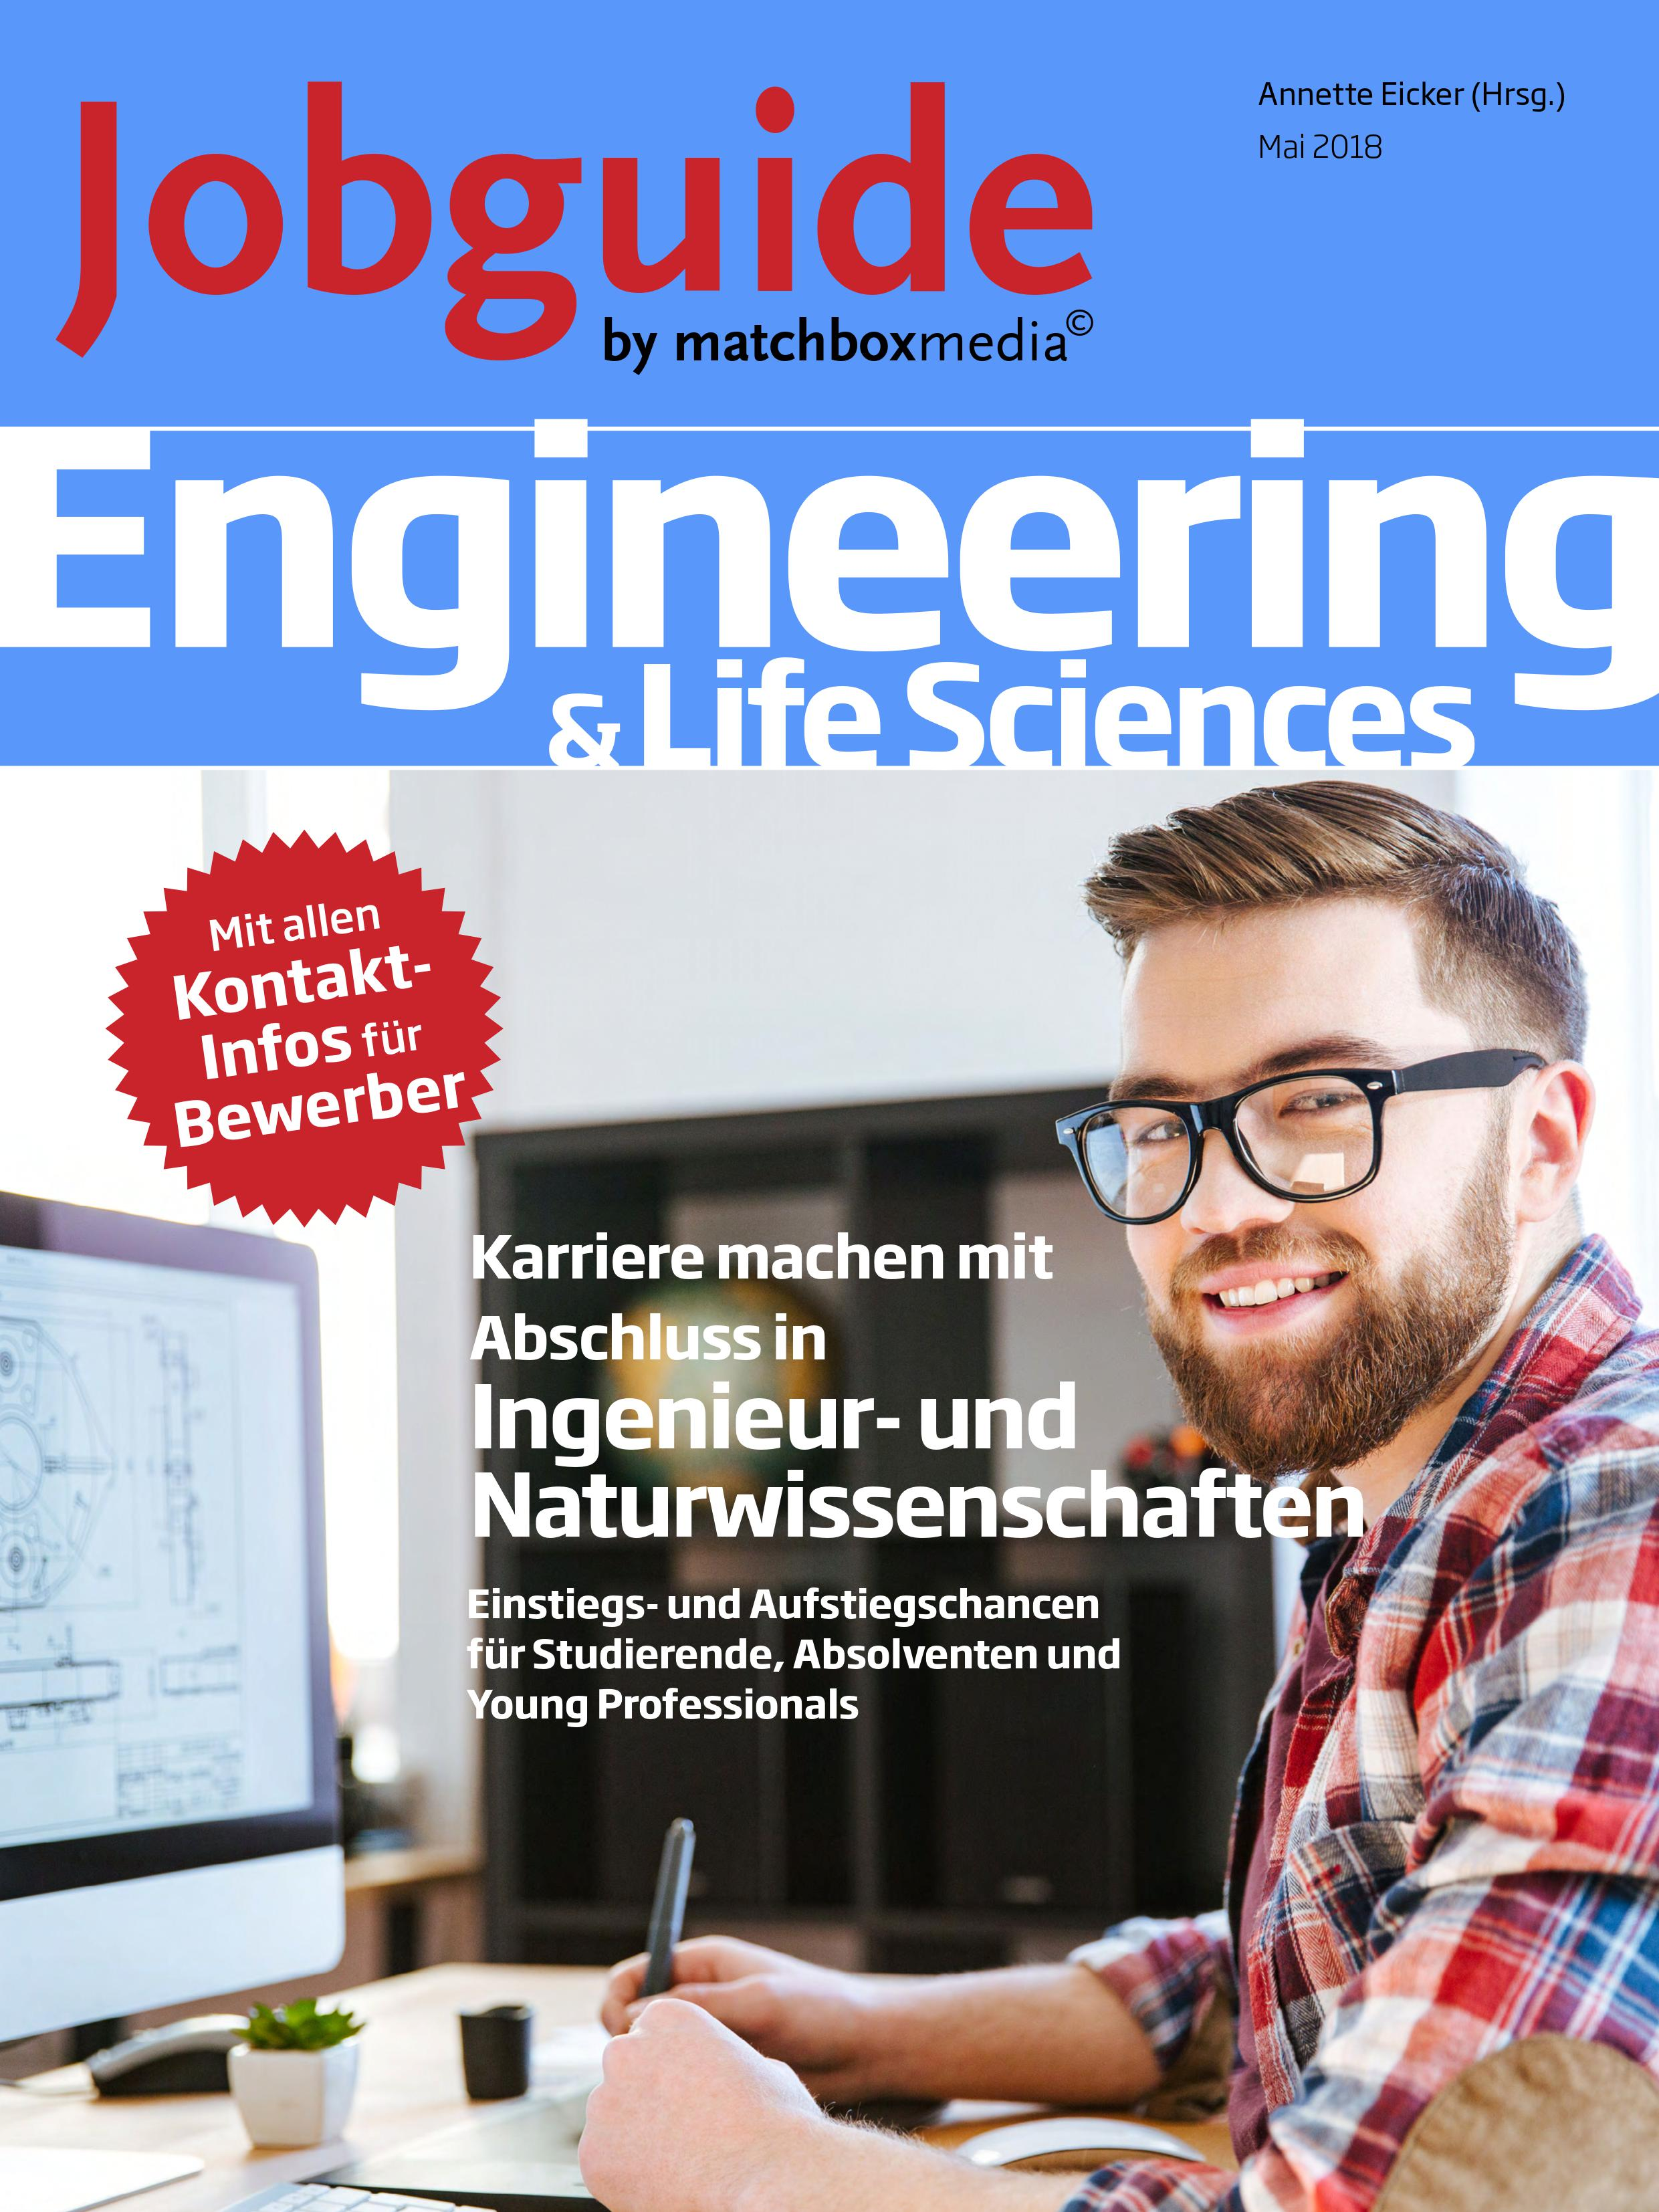 Jobguide e-Magazine Engineering